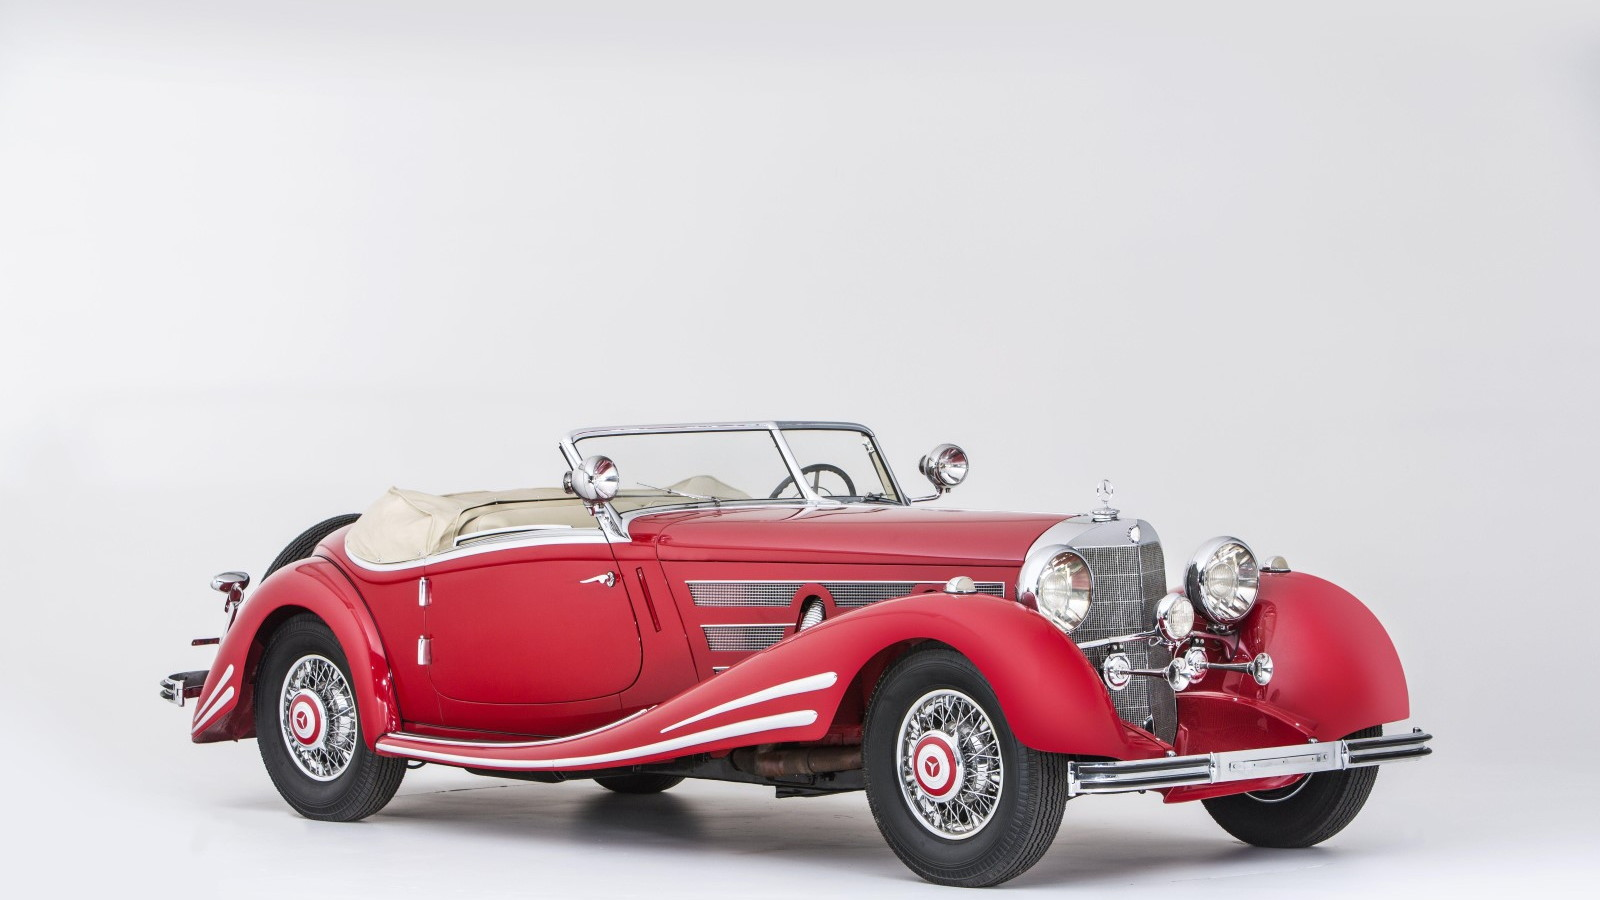 1934 Mercedes-Benz 500K/540K (Image: Bonhams)